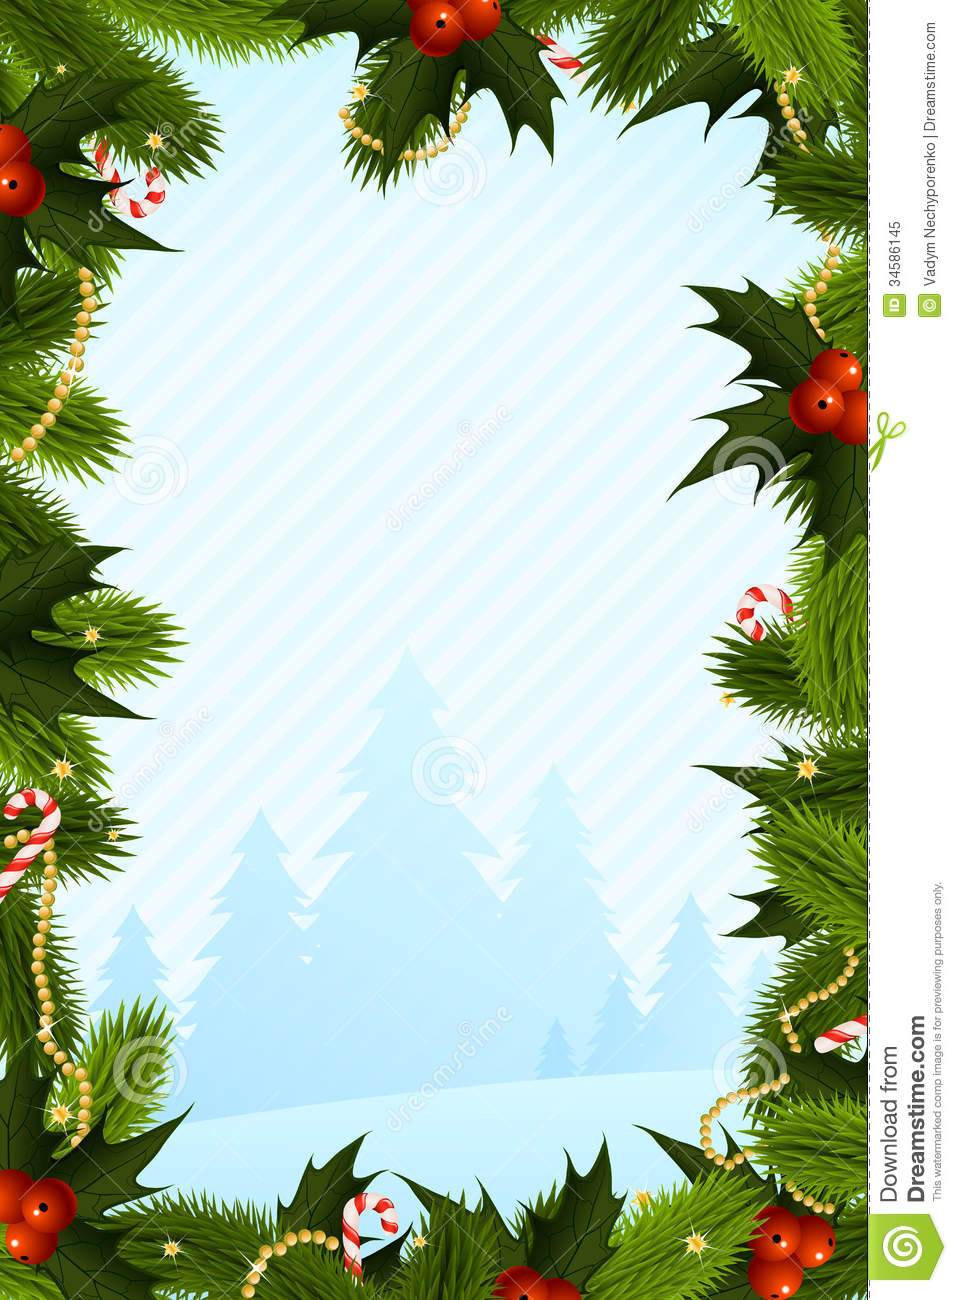 Free Christmas Card Templates.Christmas Card Template Stock Vector Illustration Of Shape